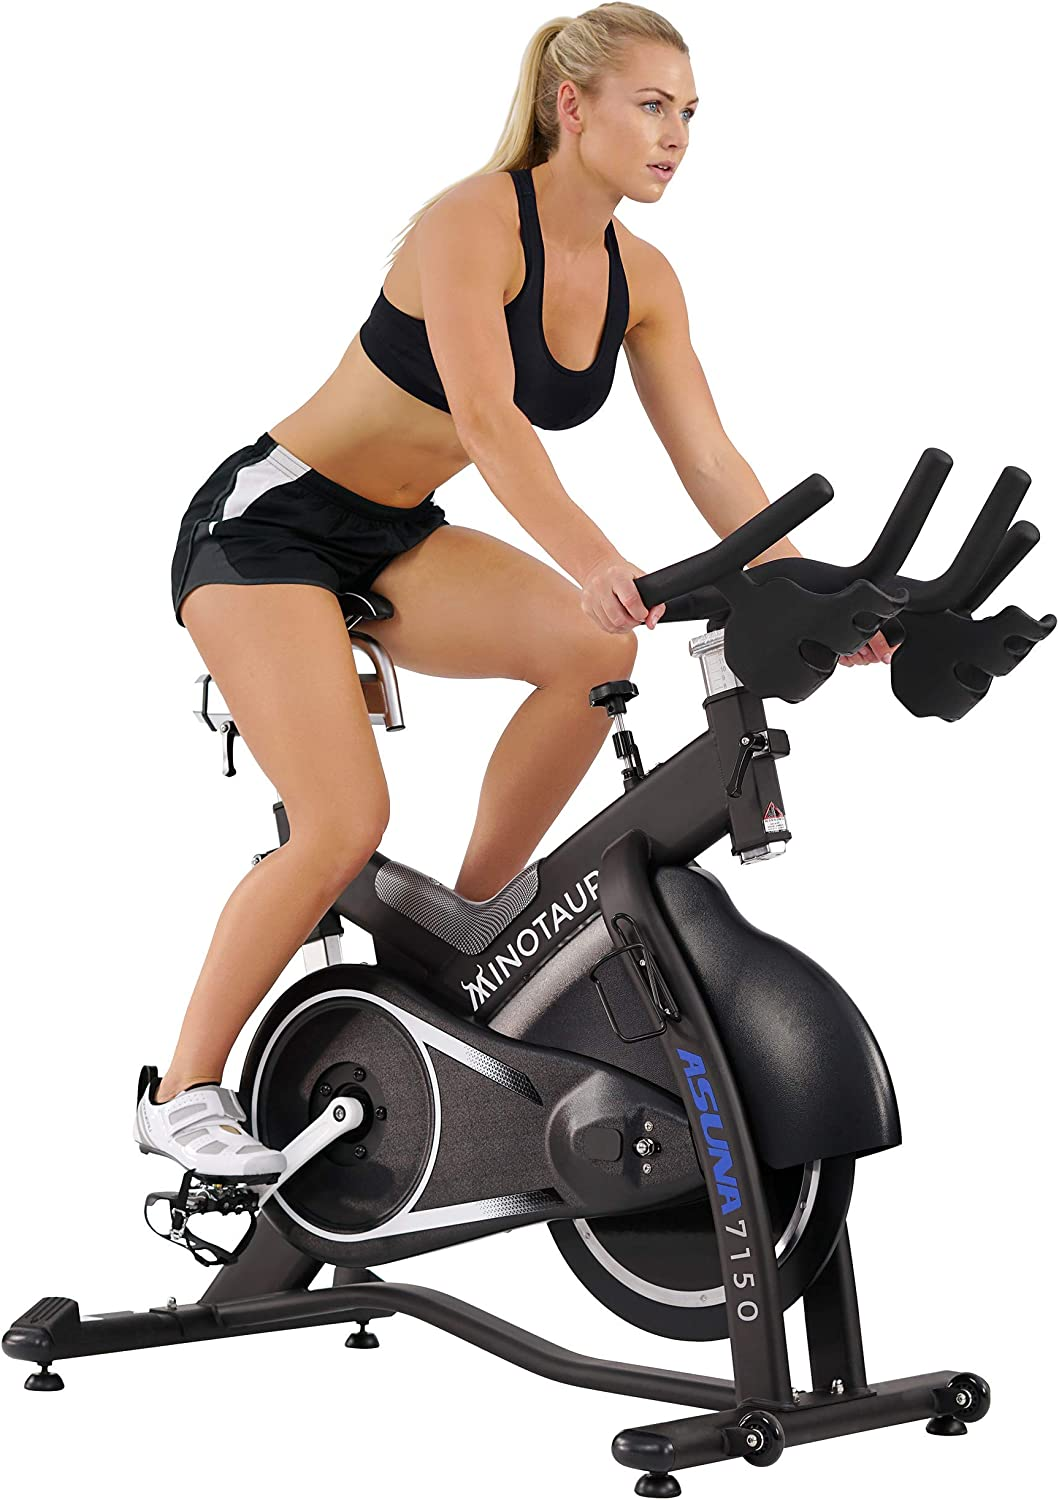 ASUNA 7150 Minotaur Exercise Bike Magnetic Belt Drive Commercial Indoor Cycling Bike with 330 LB Max Weight, SPD Style Cage Pedals and Aluminum Frame